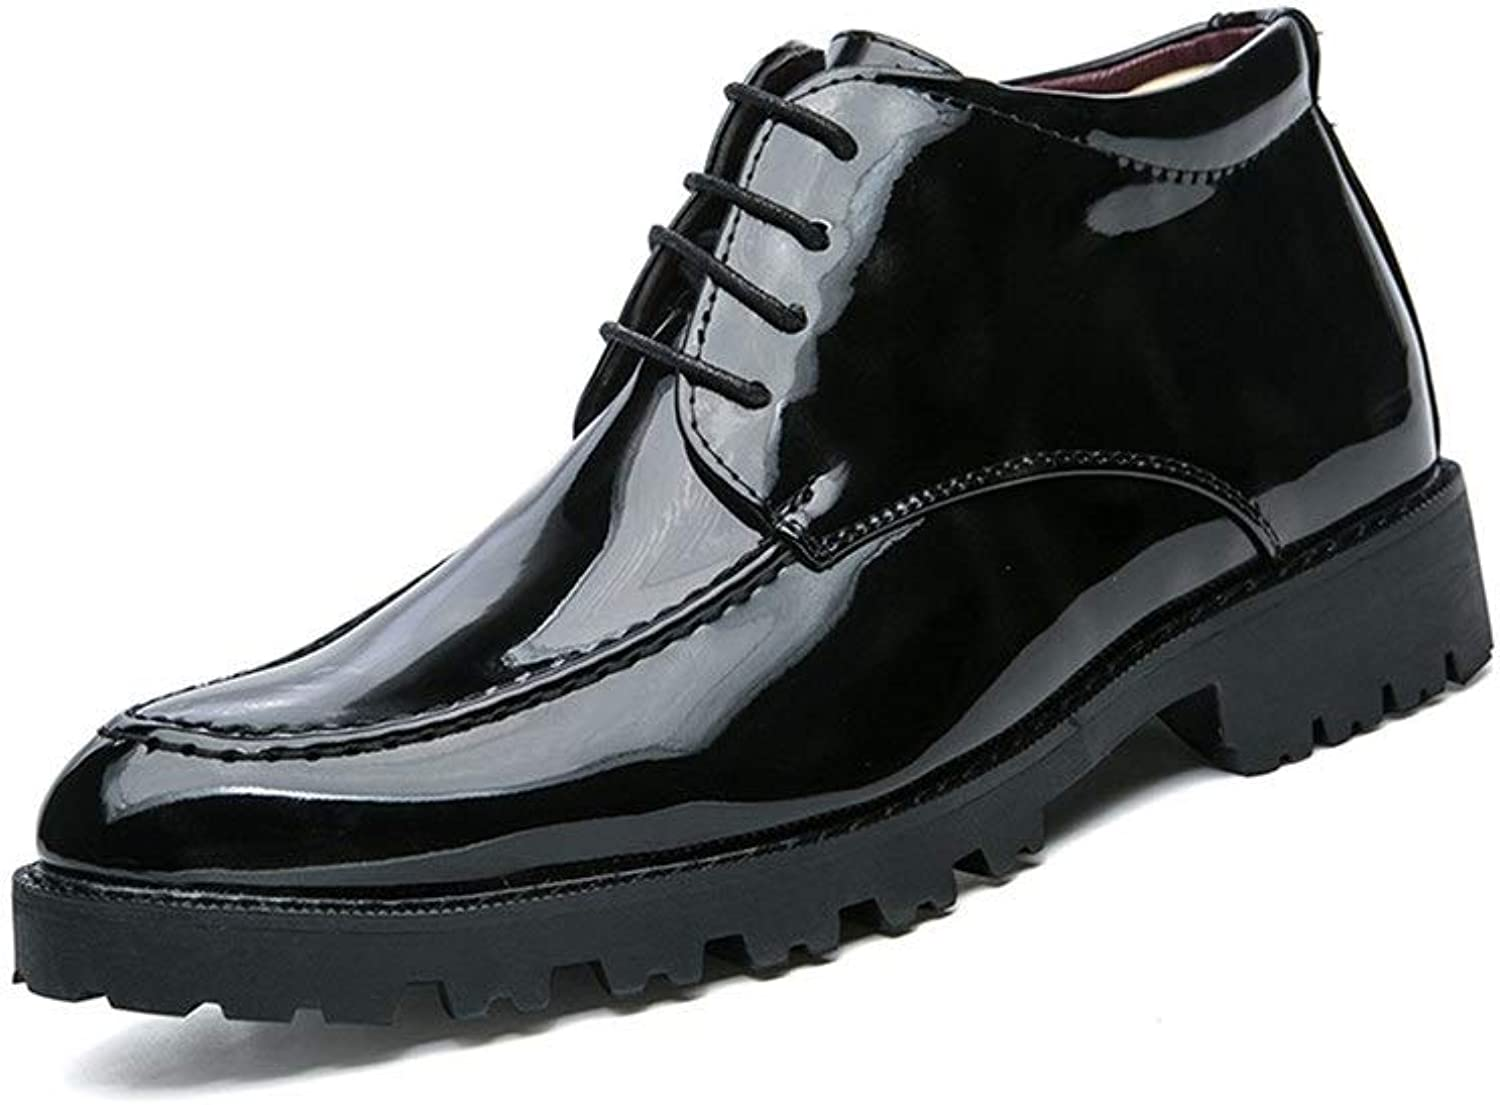 Z.L.F shoes Men's Business Oxford British Patent Leather Winter Boots with Plush Warm High Help Formal shoes Leather shoes